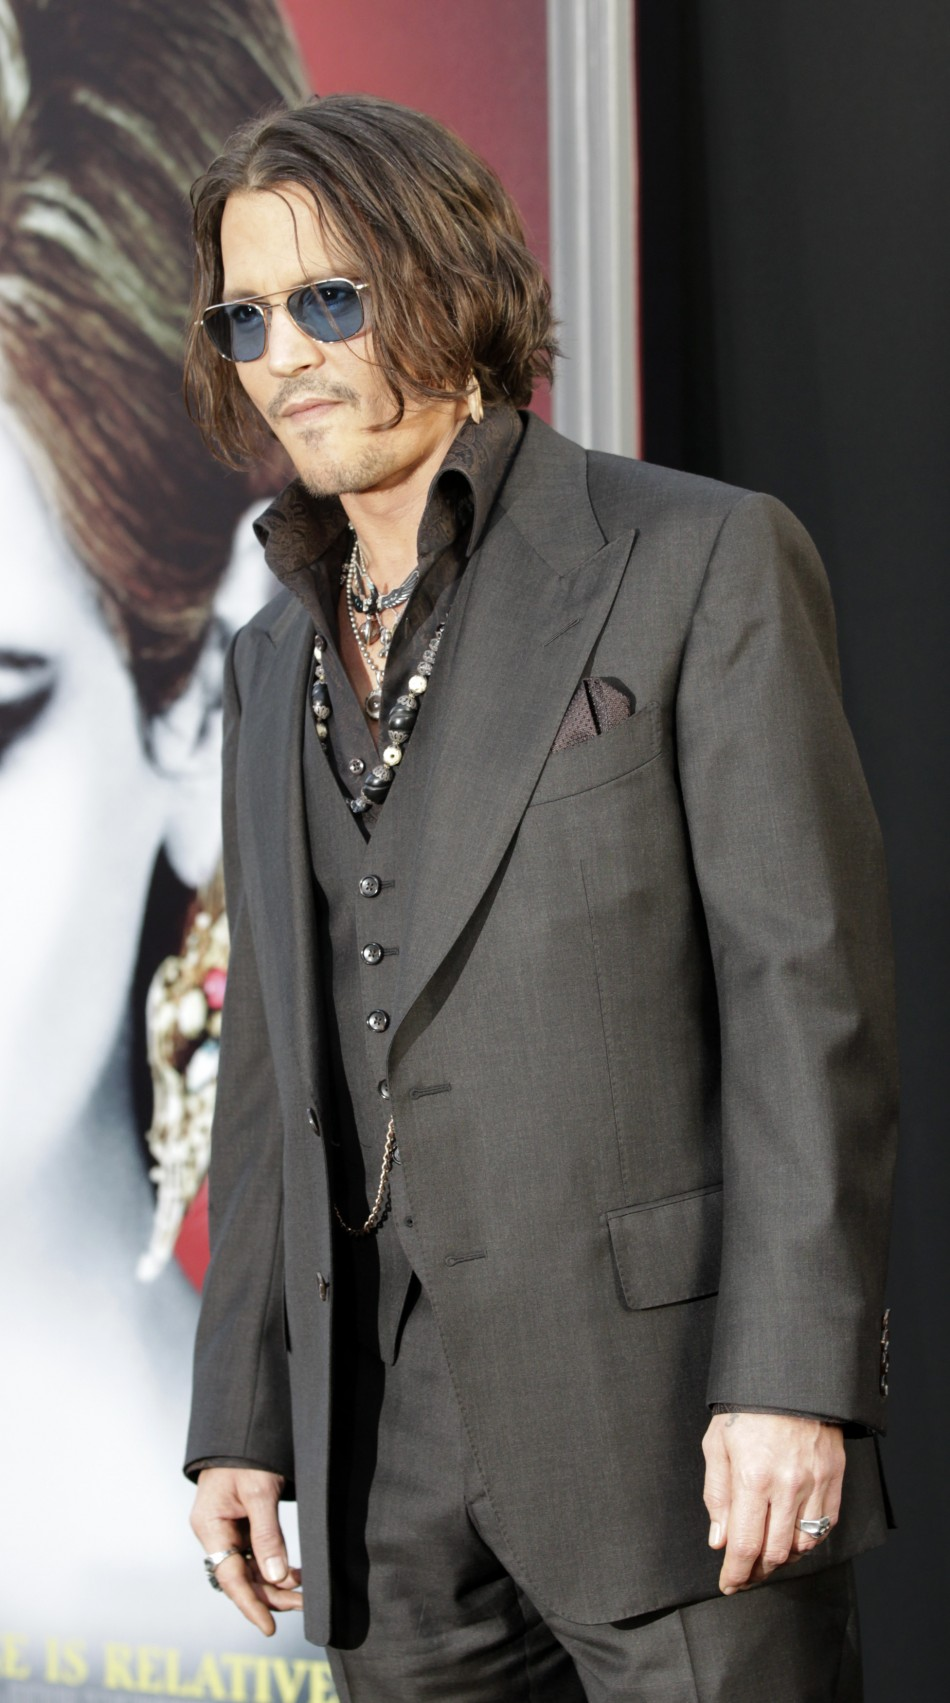 Cast member Johnny Depp poses at the premiere of the film quotDark Shadowsquot at the Graumans Chinese theatre in Hollywood, California May 7, 2012.